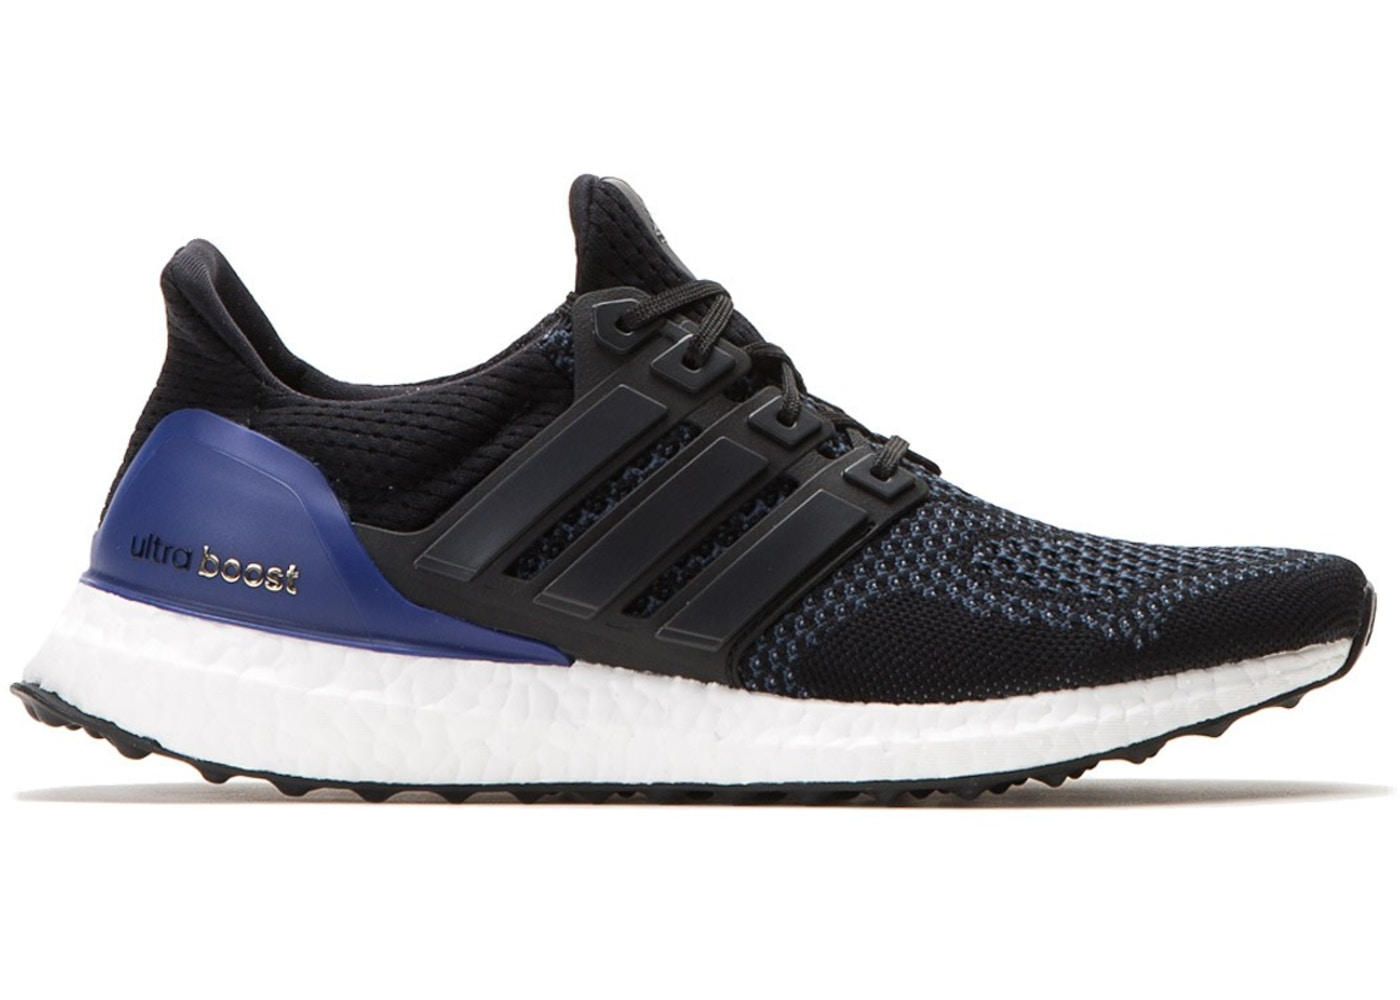 super popular 61f2f dcff4 adidas Ultra Boost 1.0 OG Black Gold Purple (W) - B27172